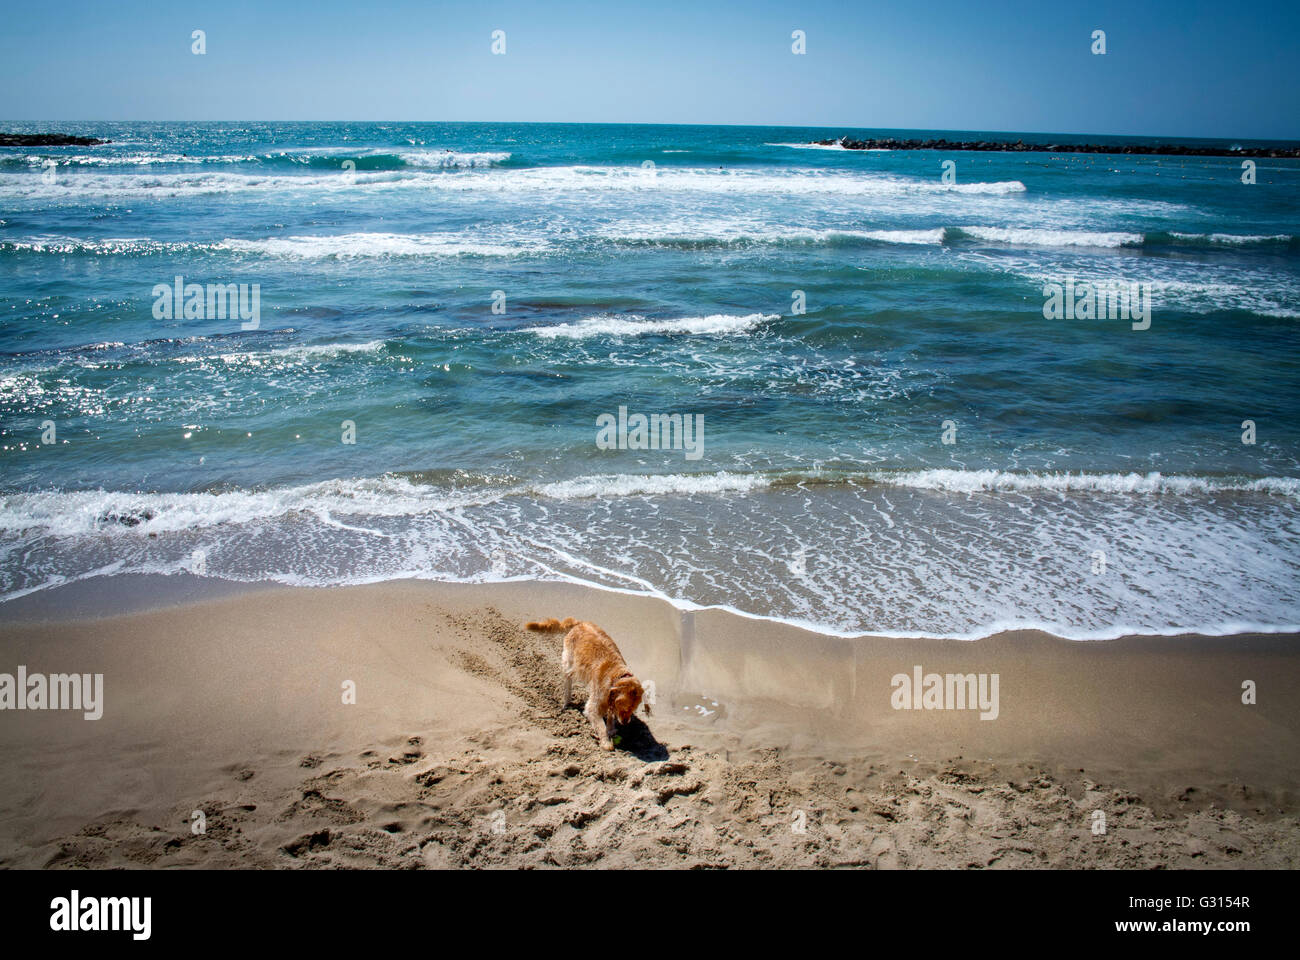 A dog digging a hole as the tide comes in at the Beach in Tel Aviv, Israel. - Stock Image